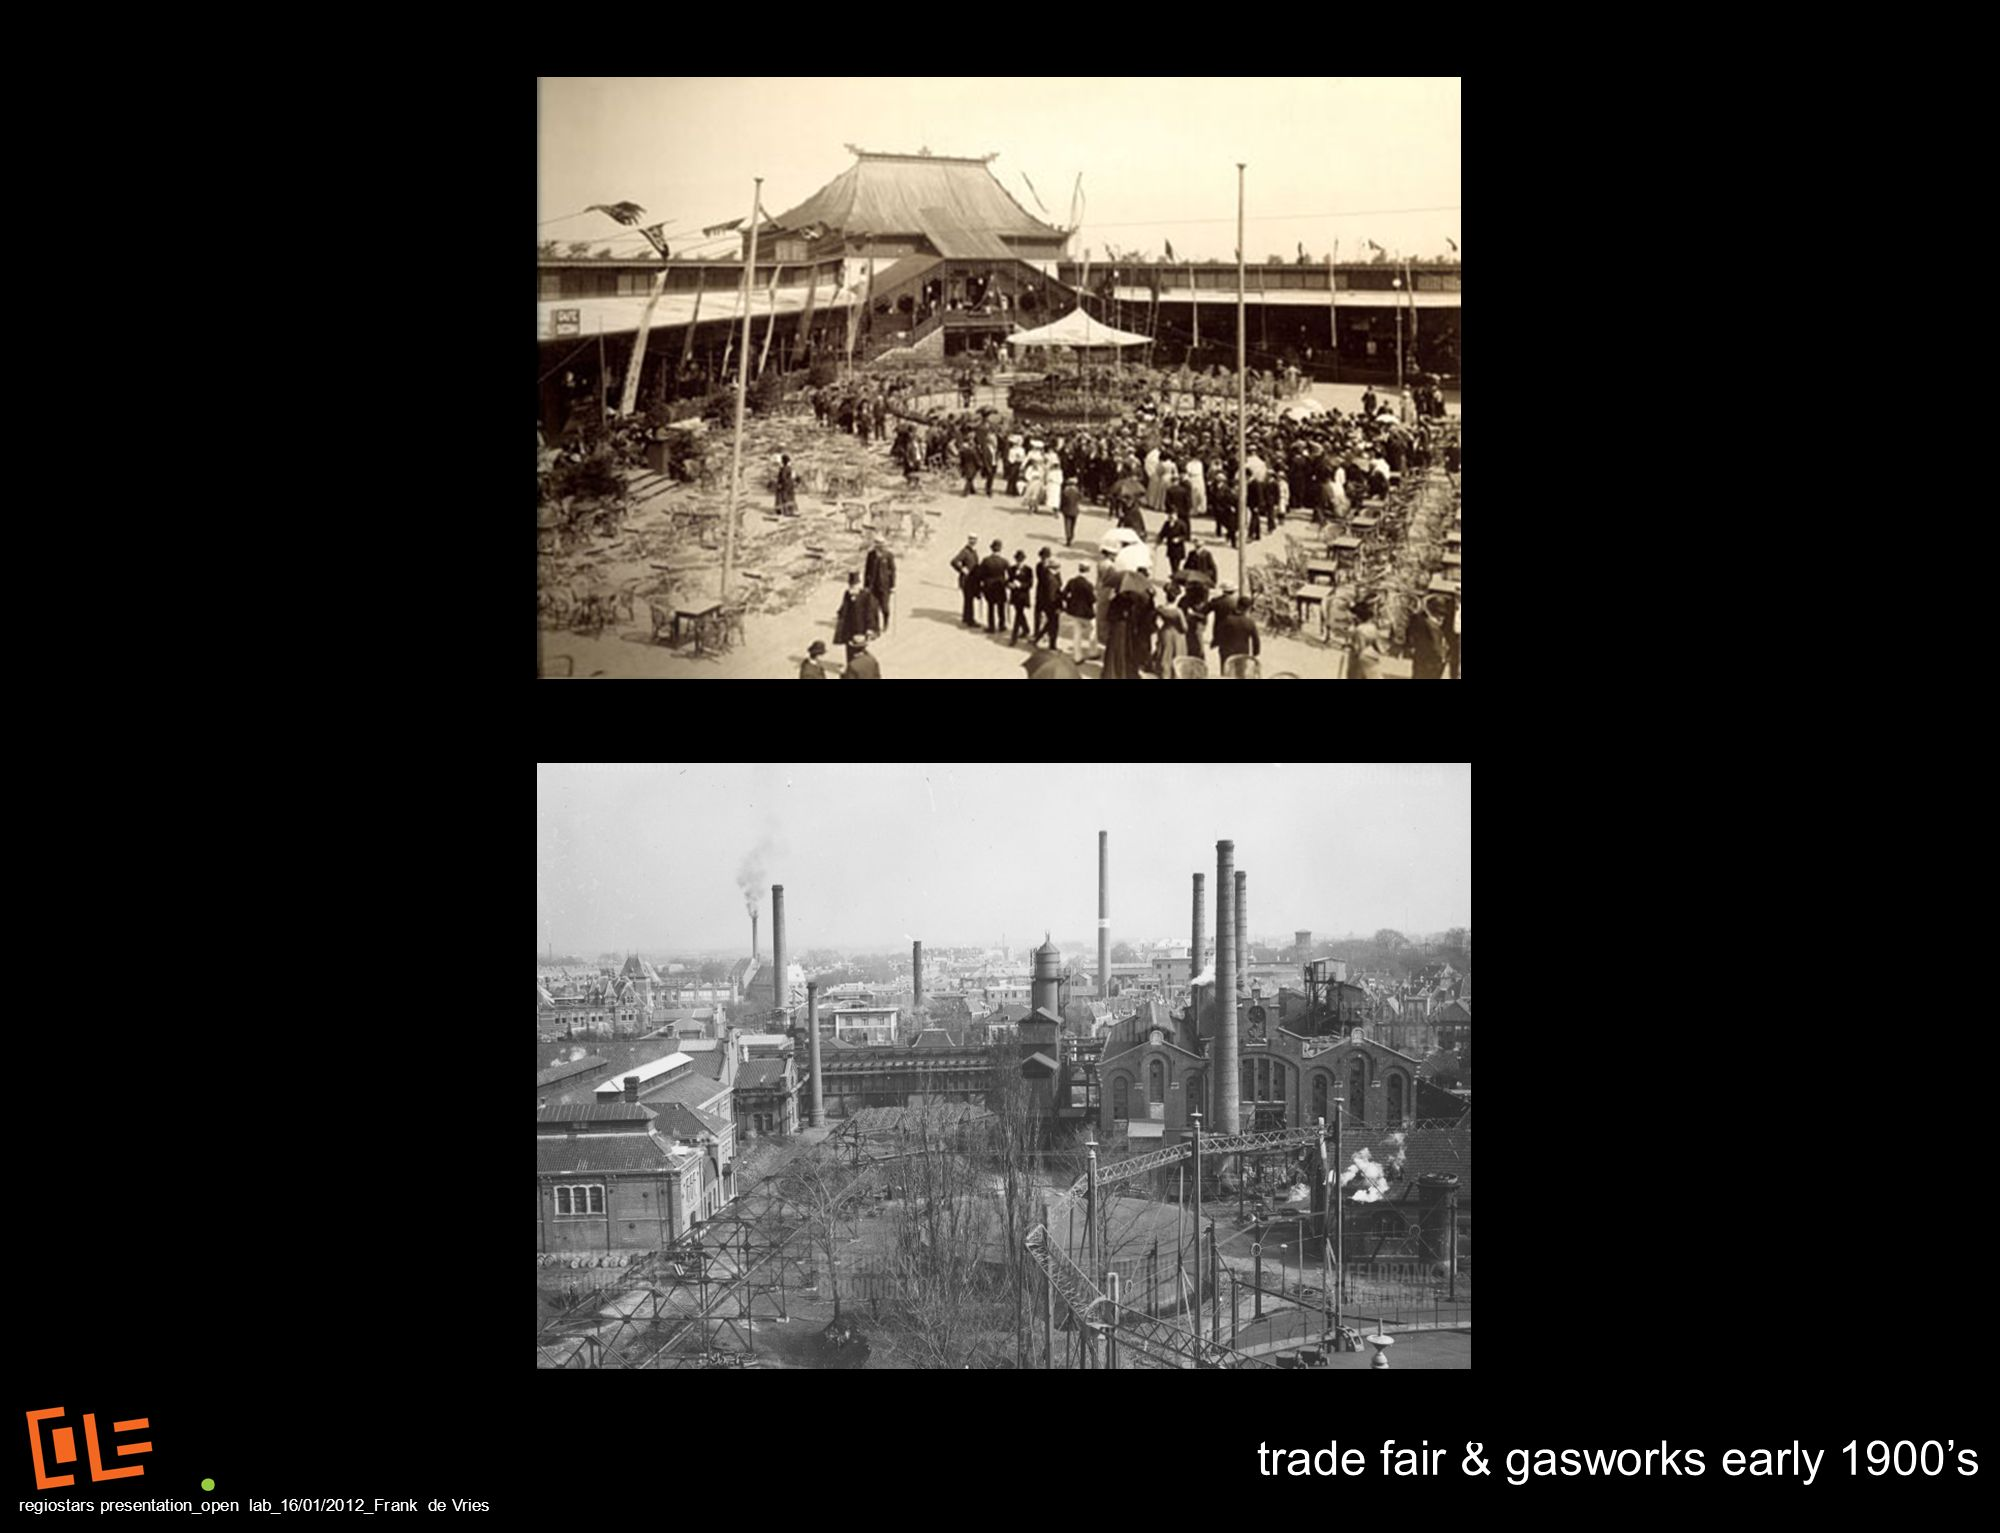 trade fair & gasworks early 1900s regiostars presentation_open lab_16/01/2012_Frank de Vries